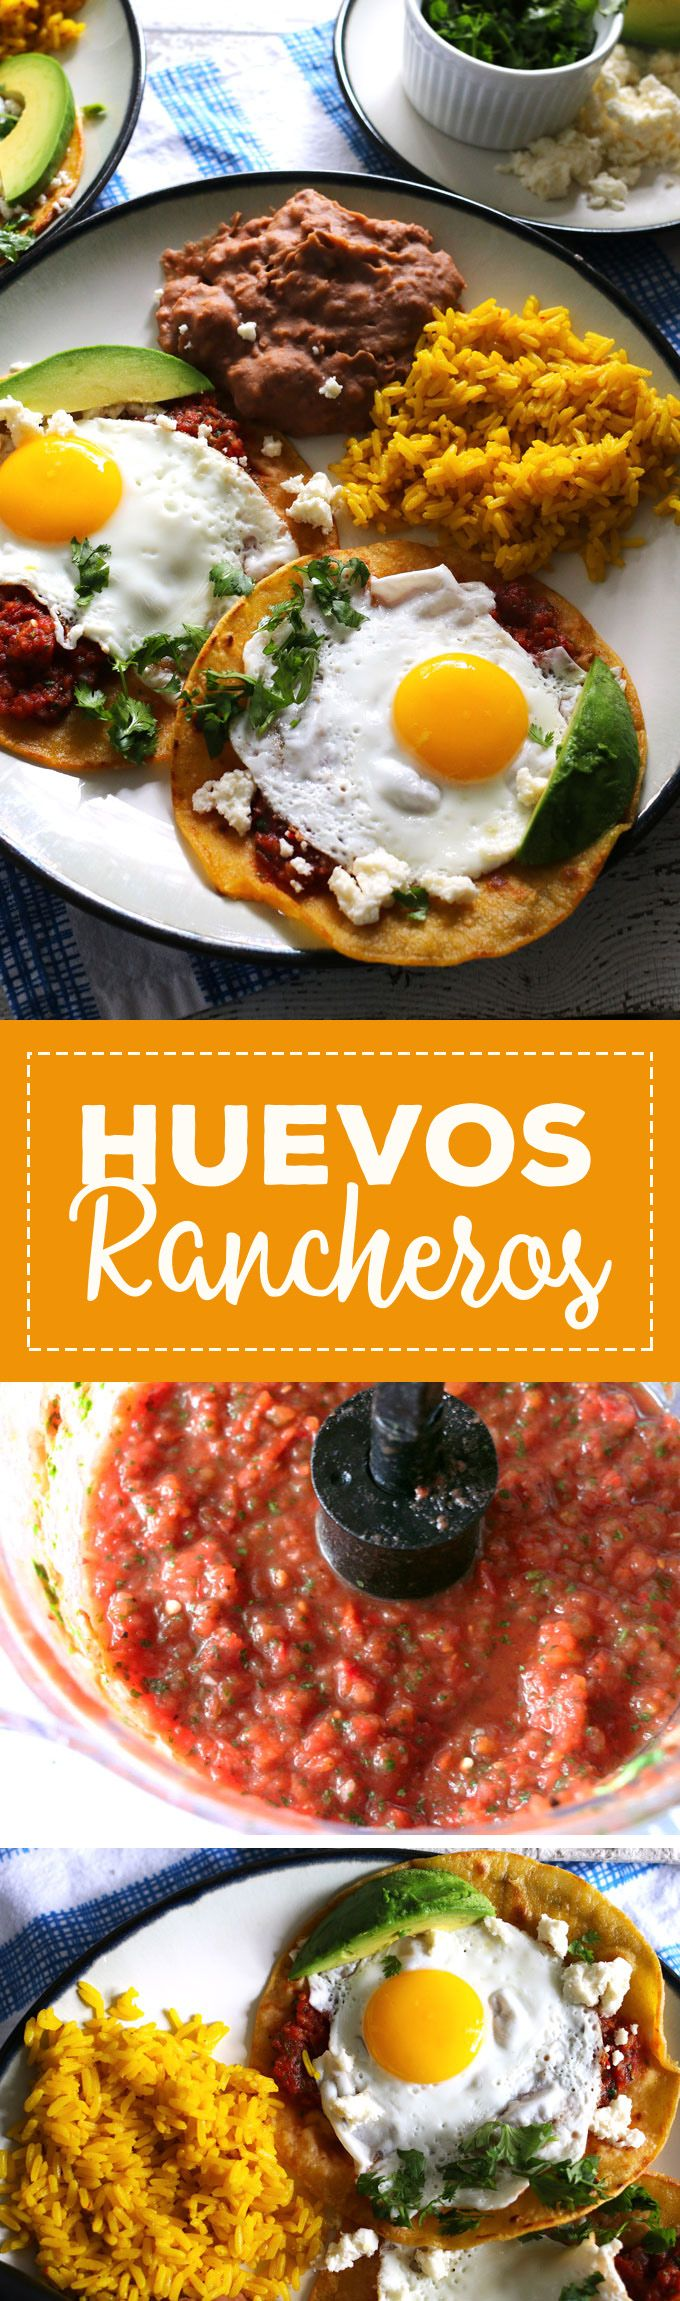 This huevos rancheros recipe is a delicious way to start your day! Made with homemade salsa and fresh eggs, it is hearty, easy to make, vegetarian, and perfect for weekend brunch or large family gatherings. Serve with a side of refried beans and rice! | h